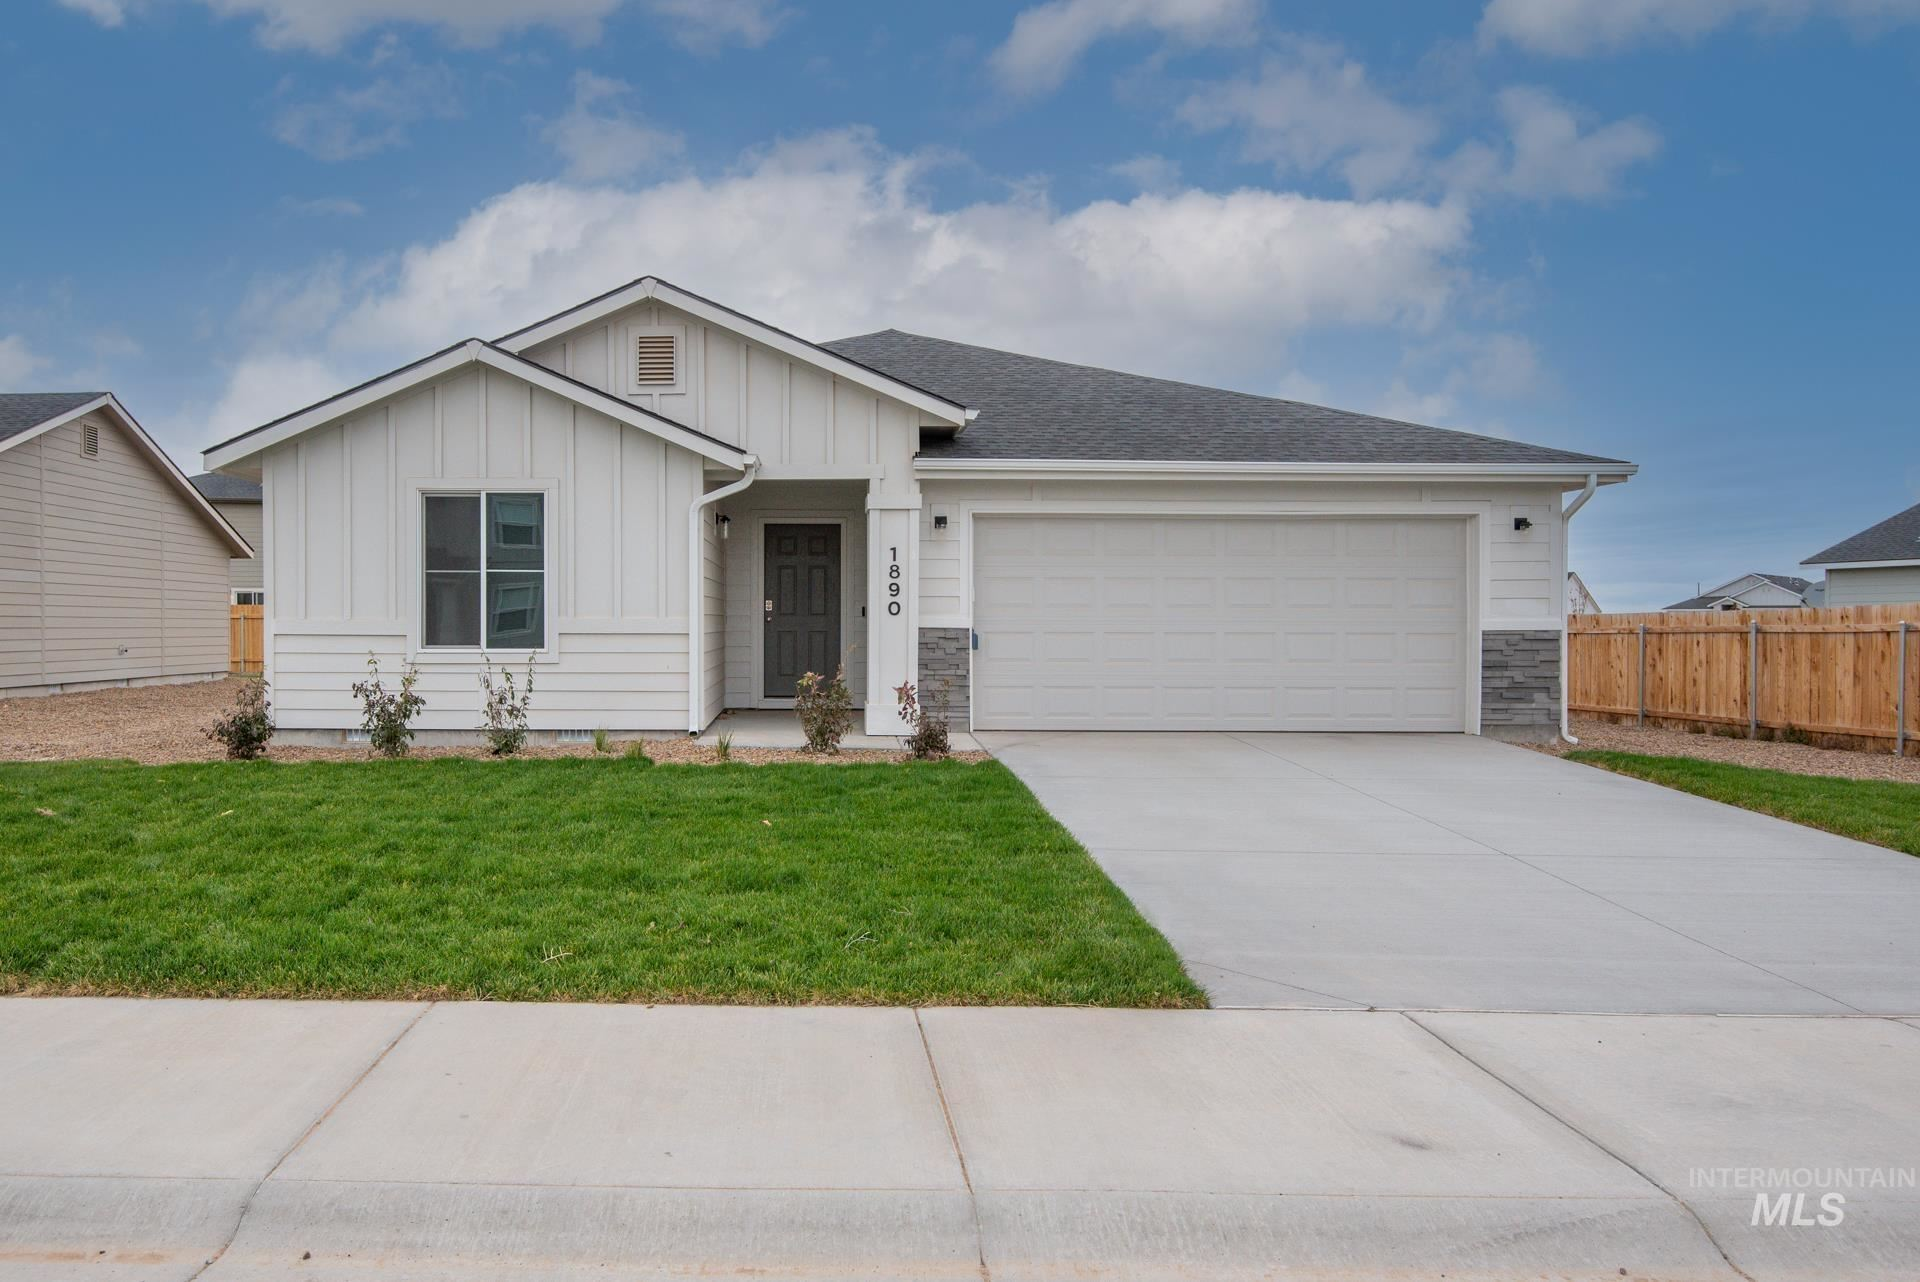 1890 SW Challis Dr, Mountain Home, ID 83647 - MLS#: 98809269